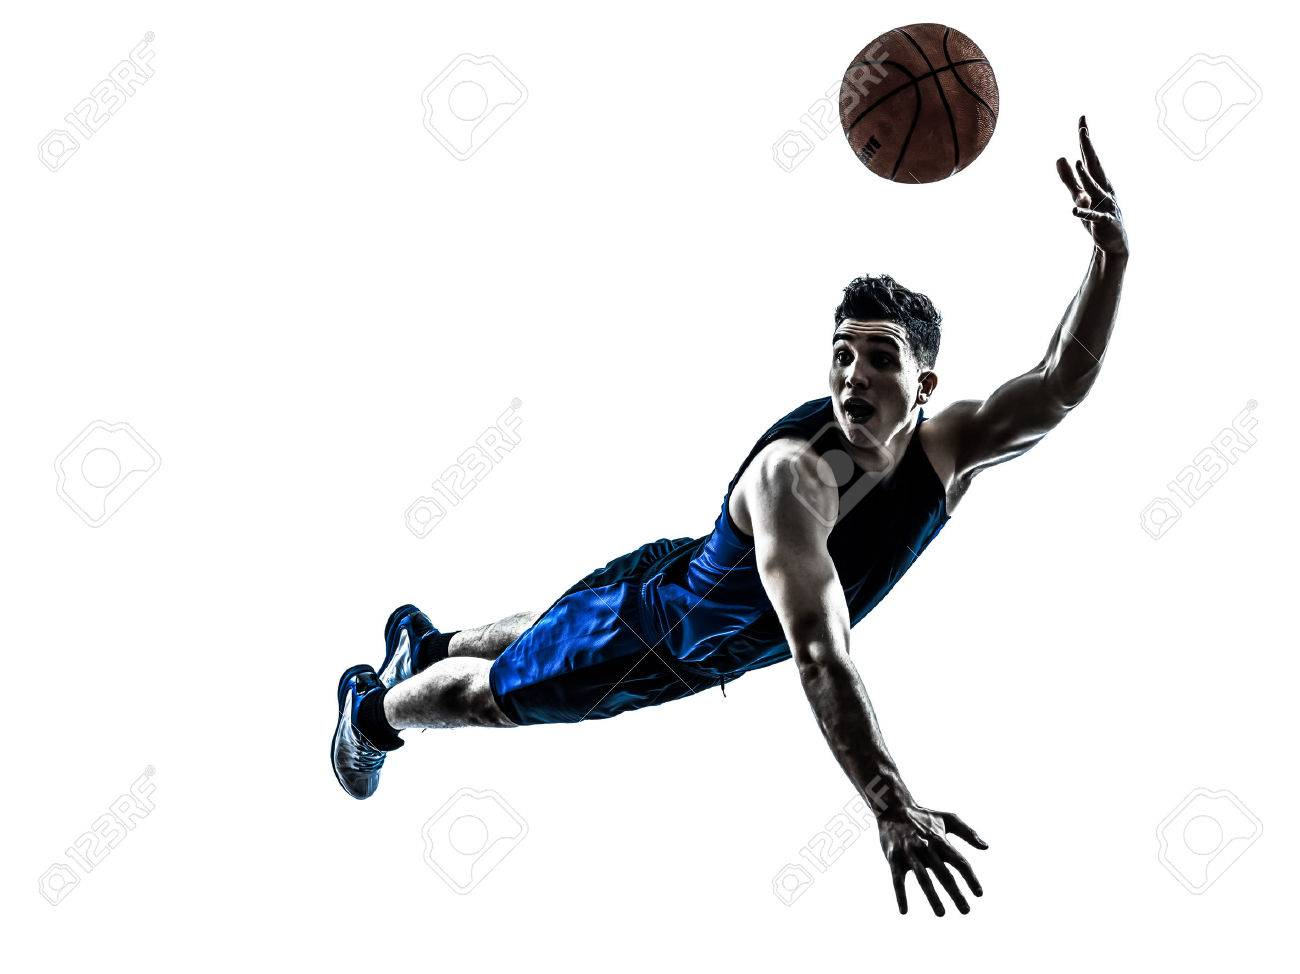 basketball player shooting stock photos u0026 pictures royalty free